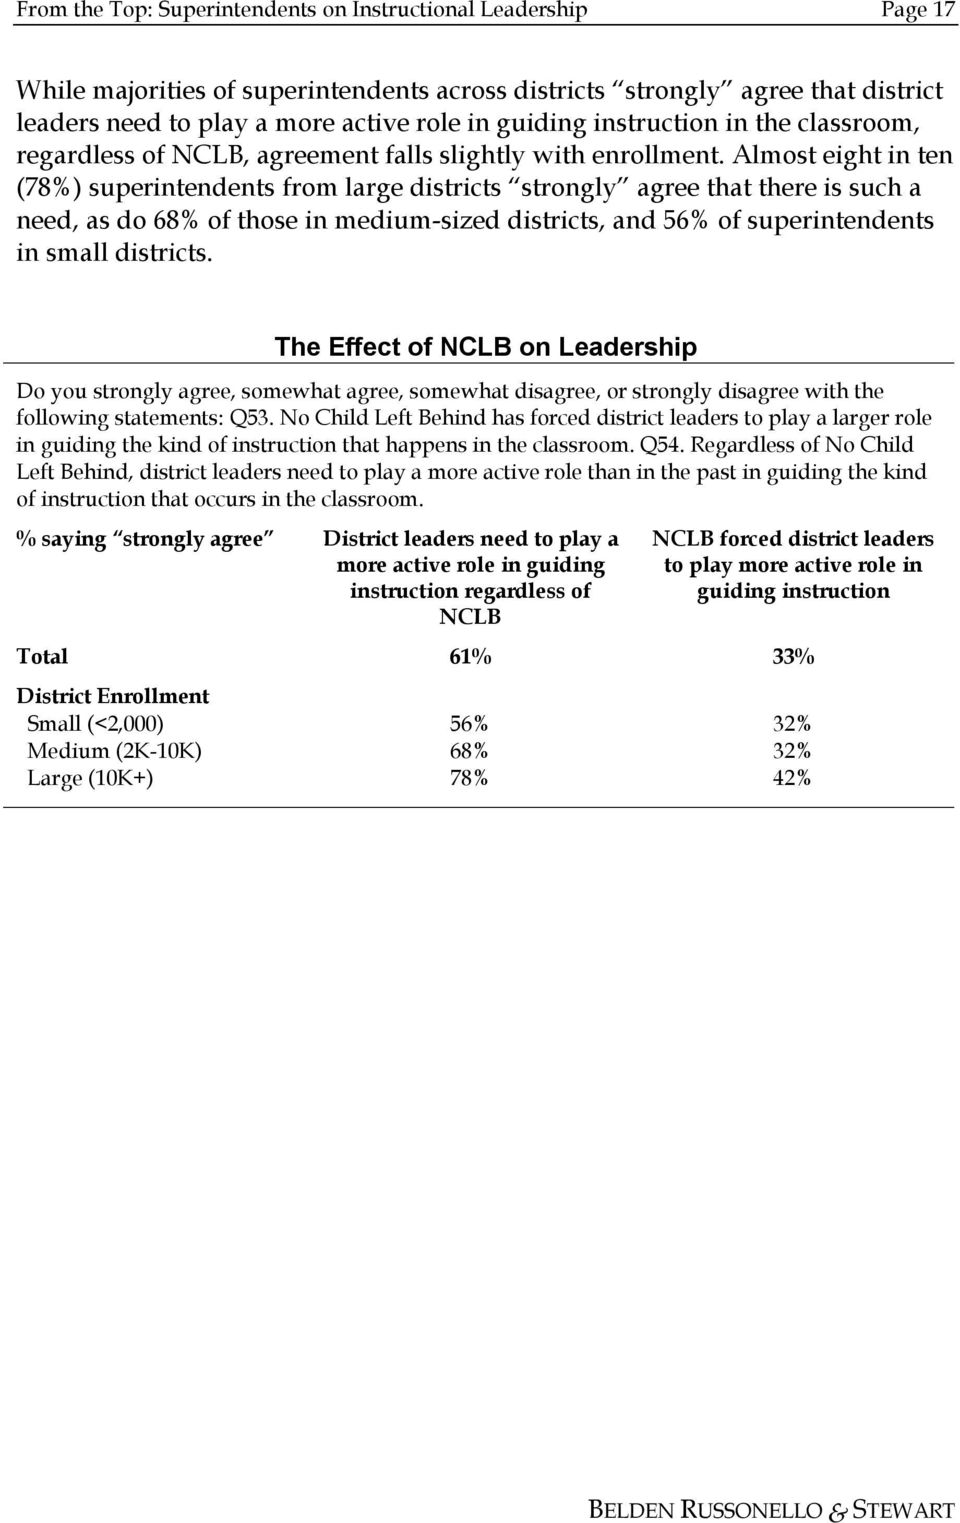 Almost eight in ten (78%) superintendents from large districts strongly agree that there is such a need, as do 68% of those in medium-sized districts, and 56% of superintendents in small districts.